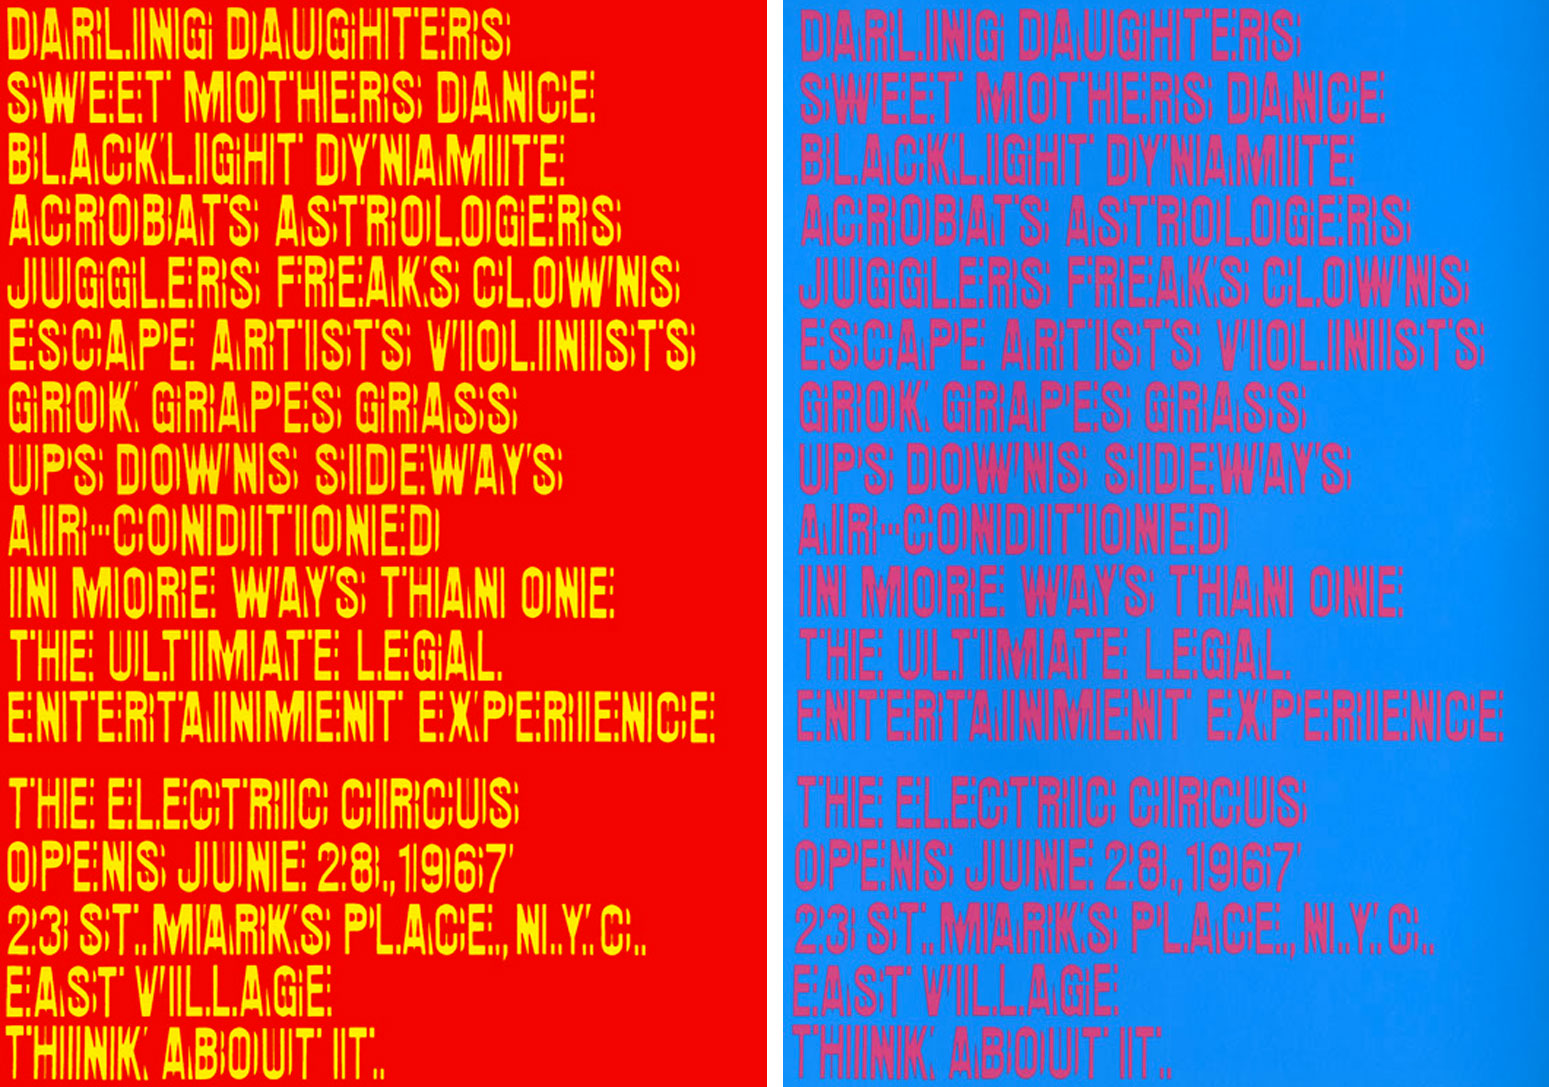 Chermayeff-and-Geismar-the-electric-circus-poster-1967-02